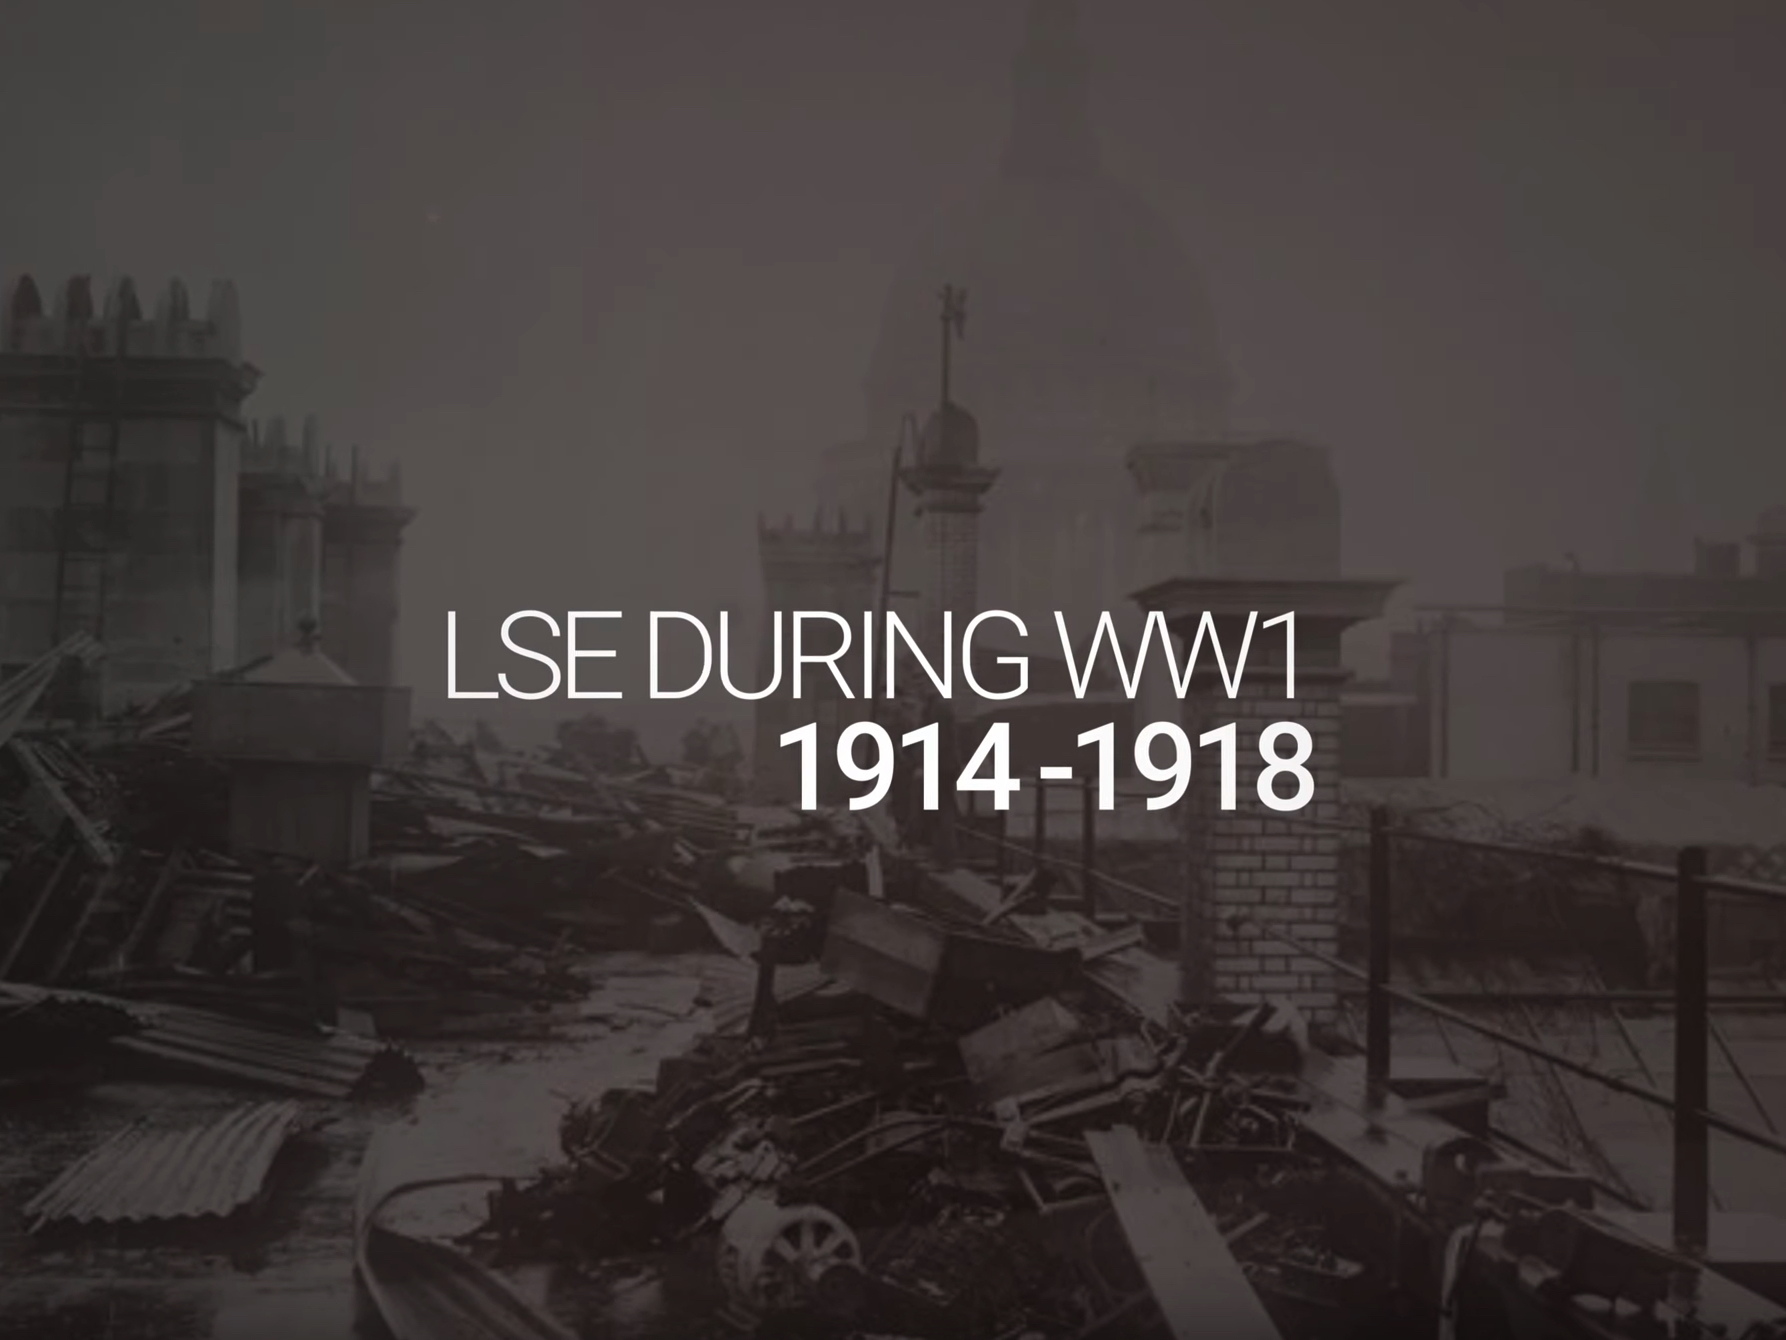 LSE during WWI